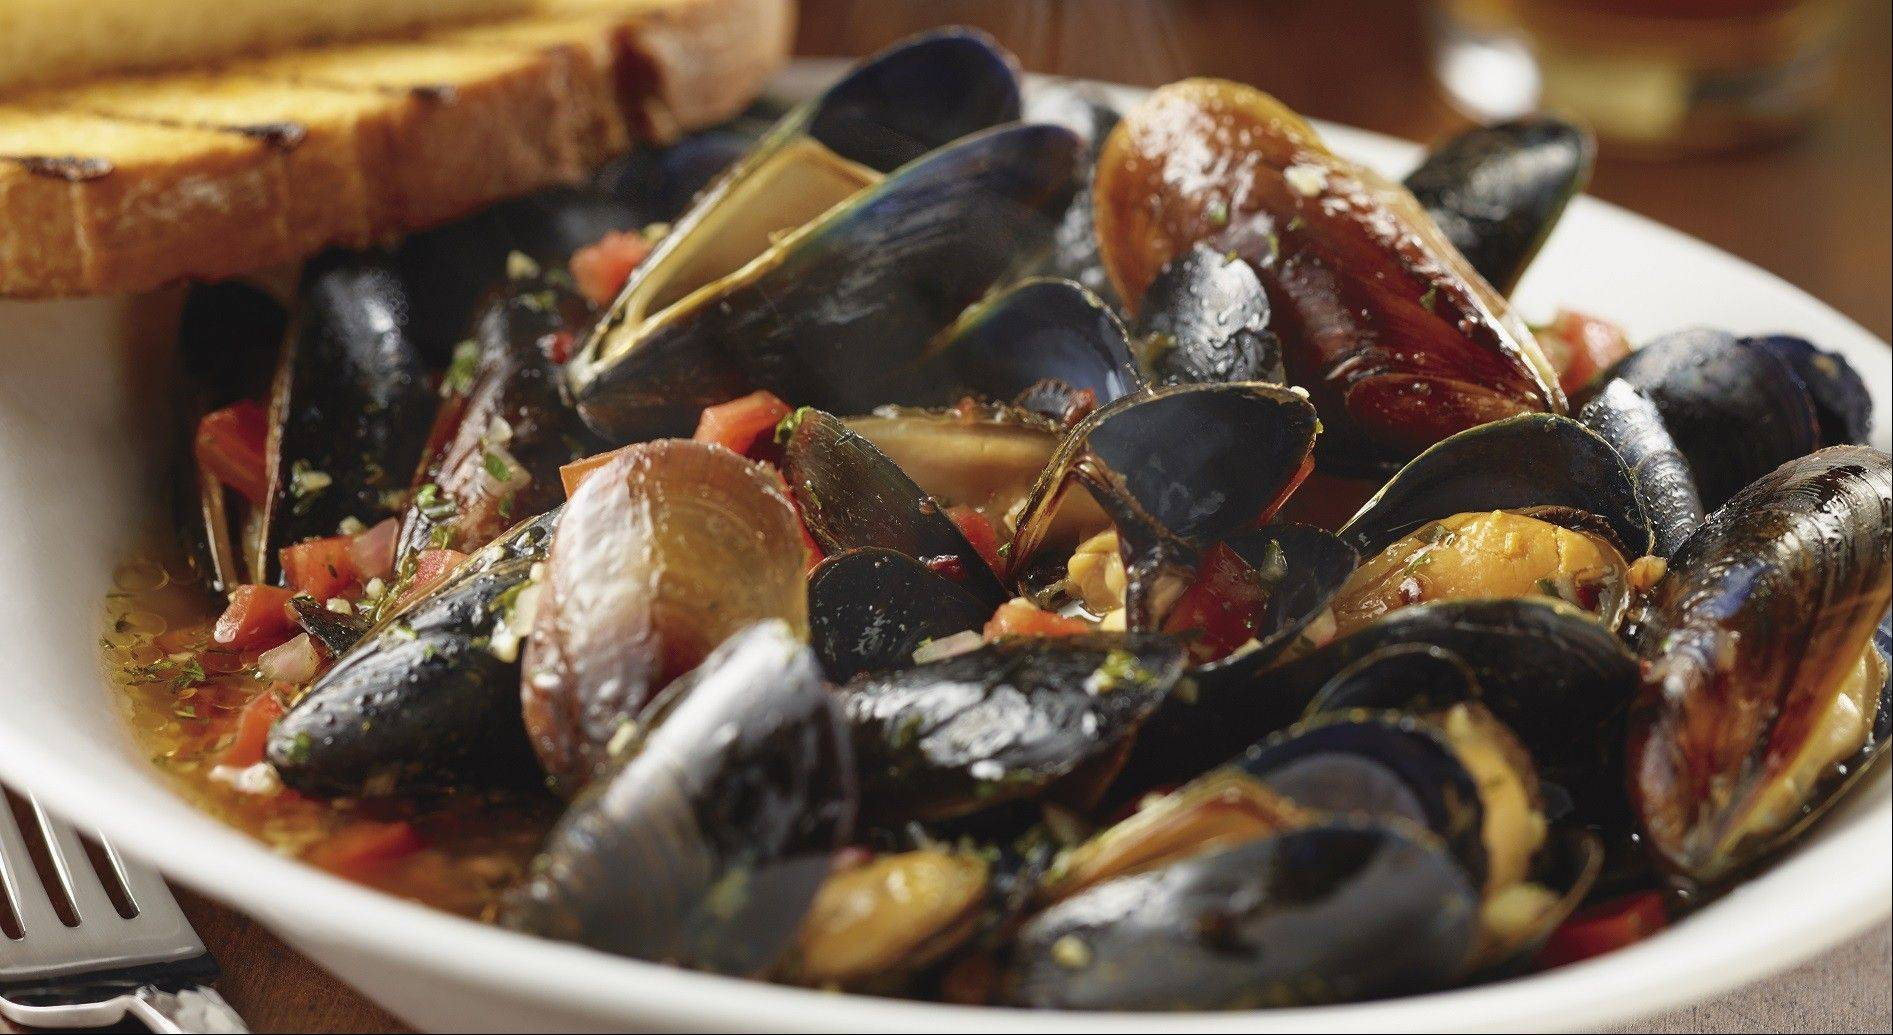 Start with the garlic mussels.